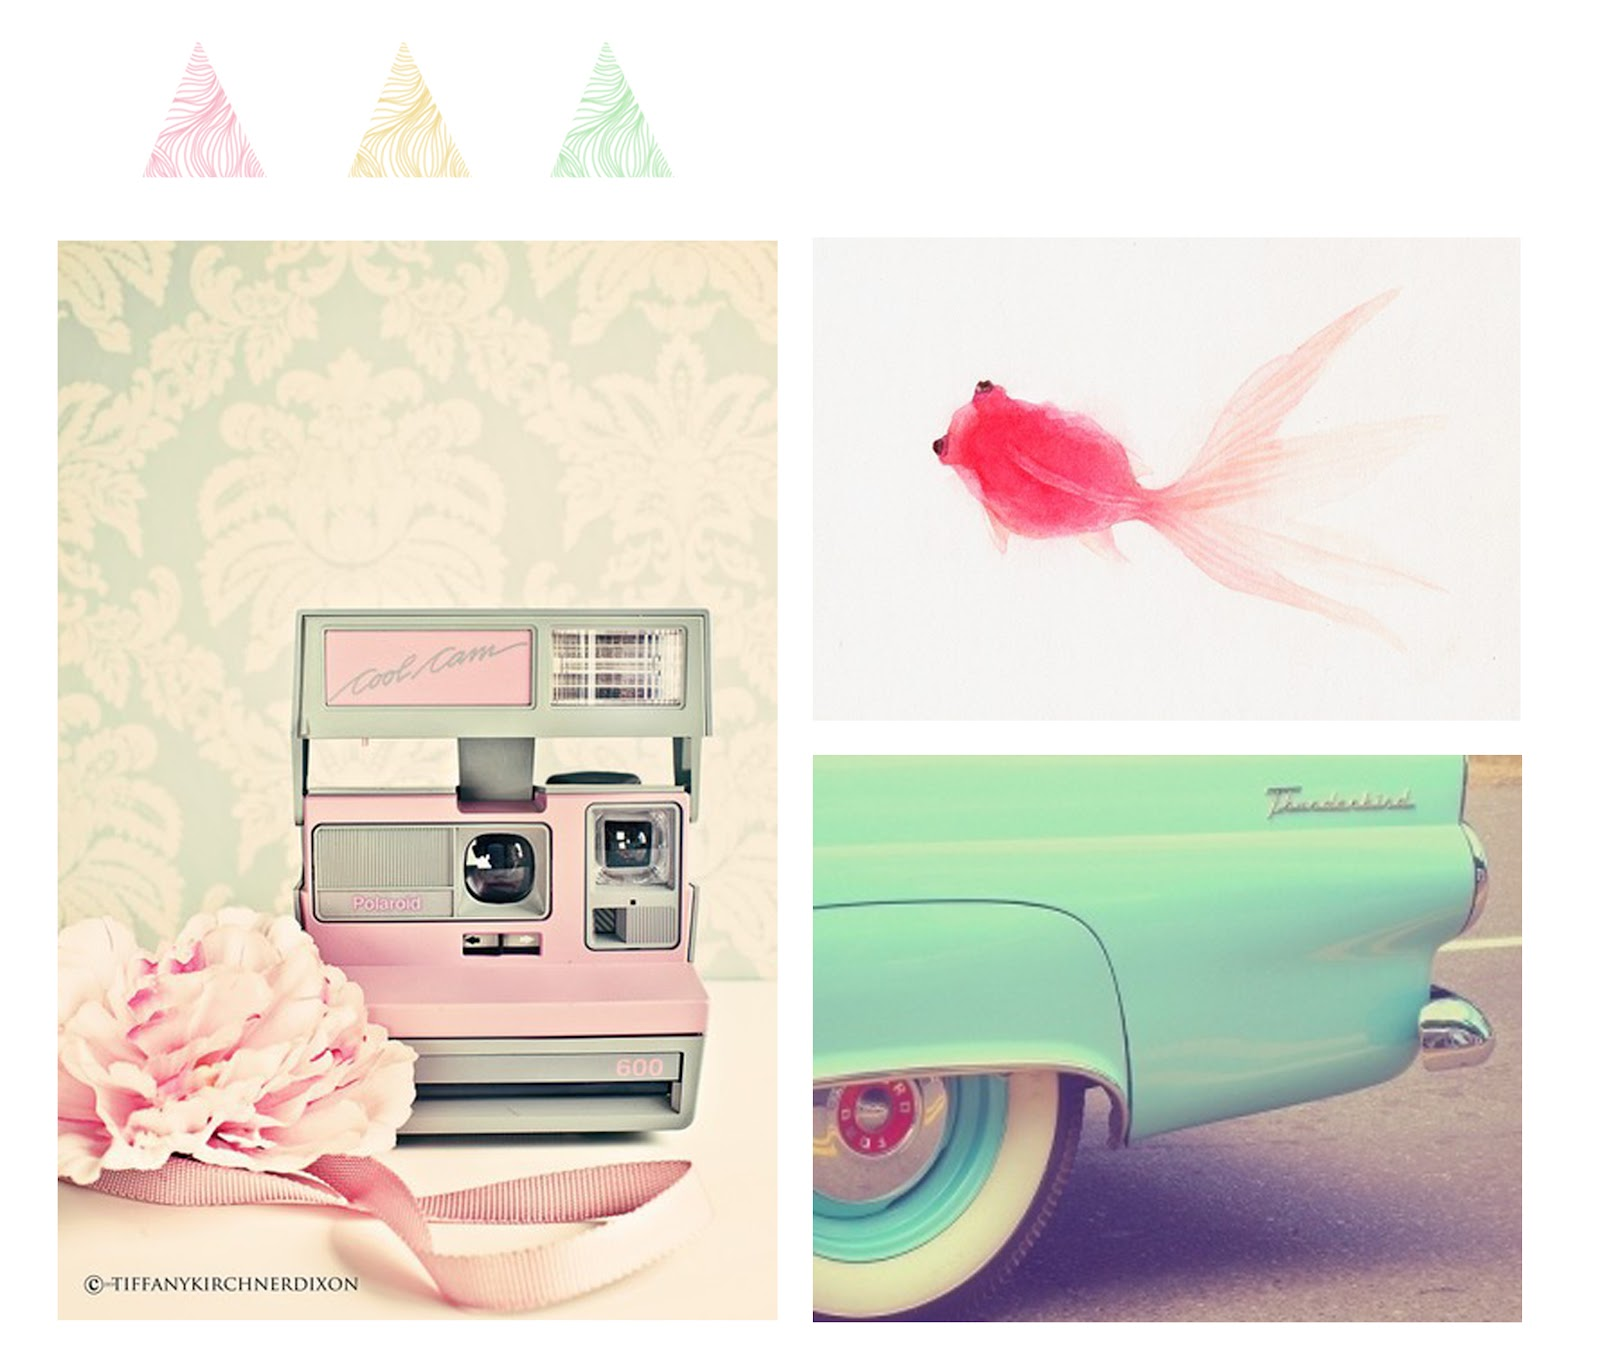 pastel-color-1-photos-things-pinterest-crecre2